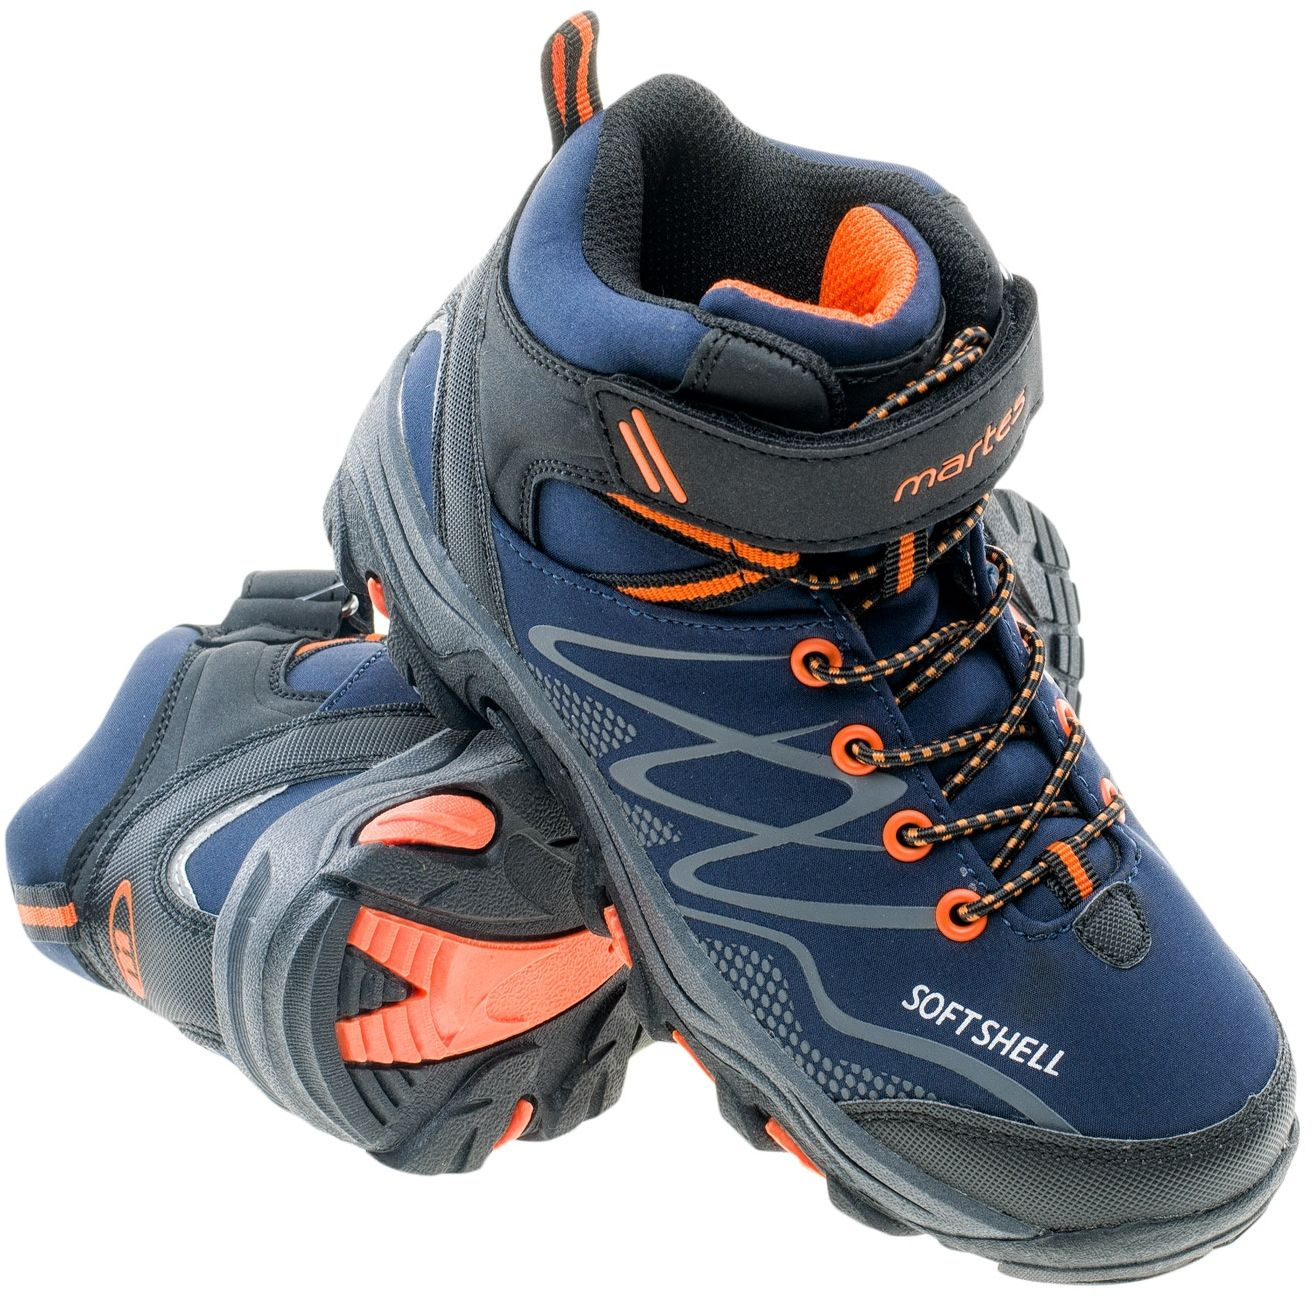 Martes Buty juniorskie RONN MID JR navy/orange/dark grey r. 32 5902786077090